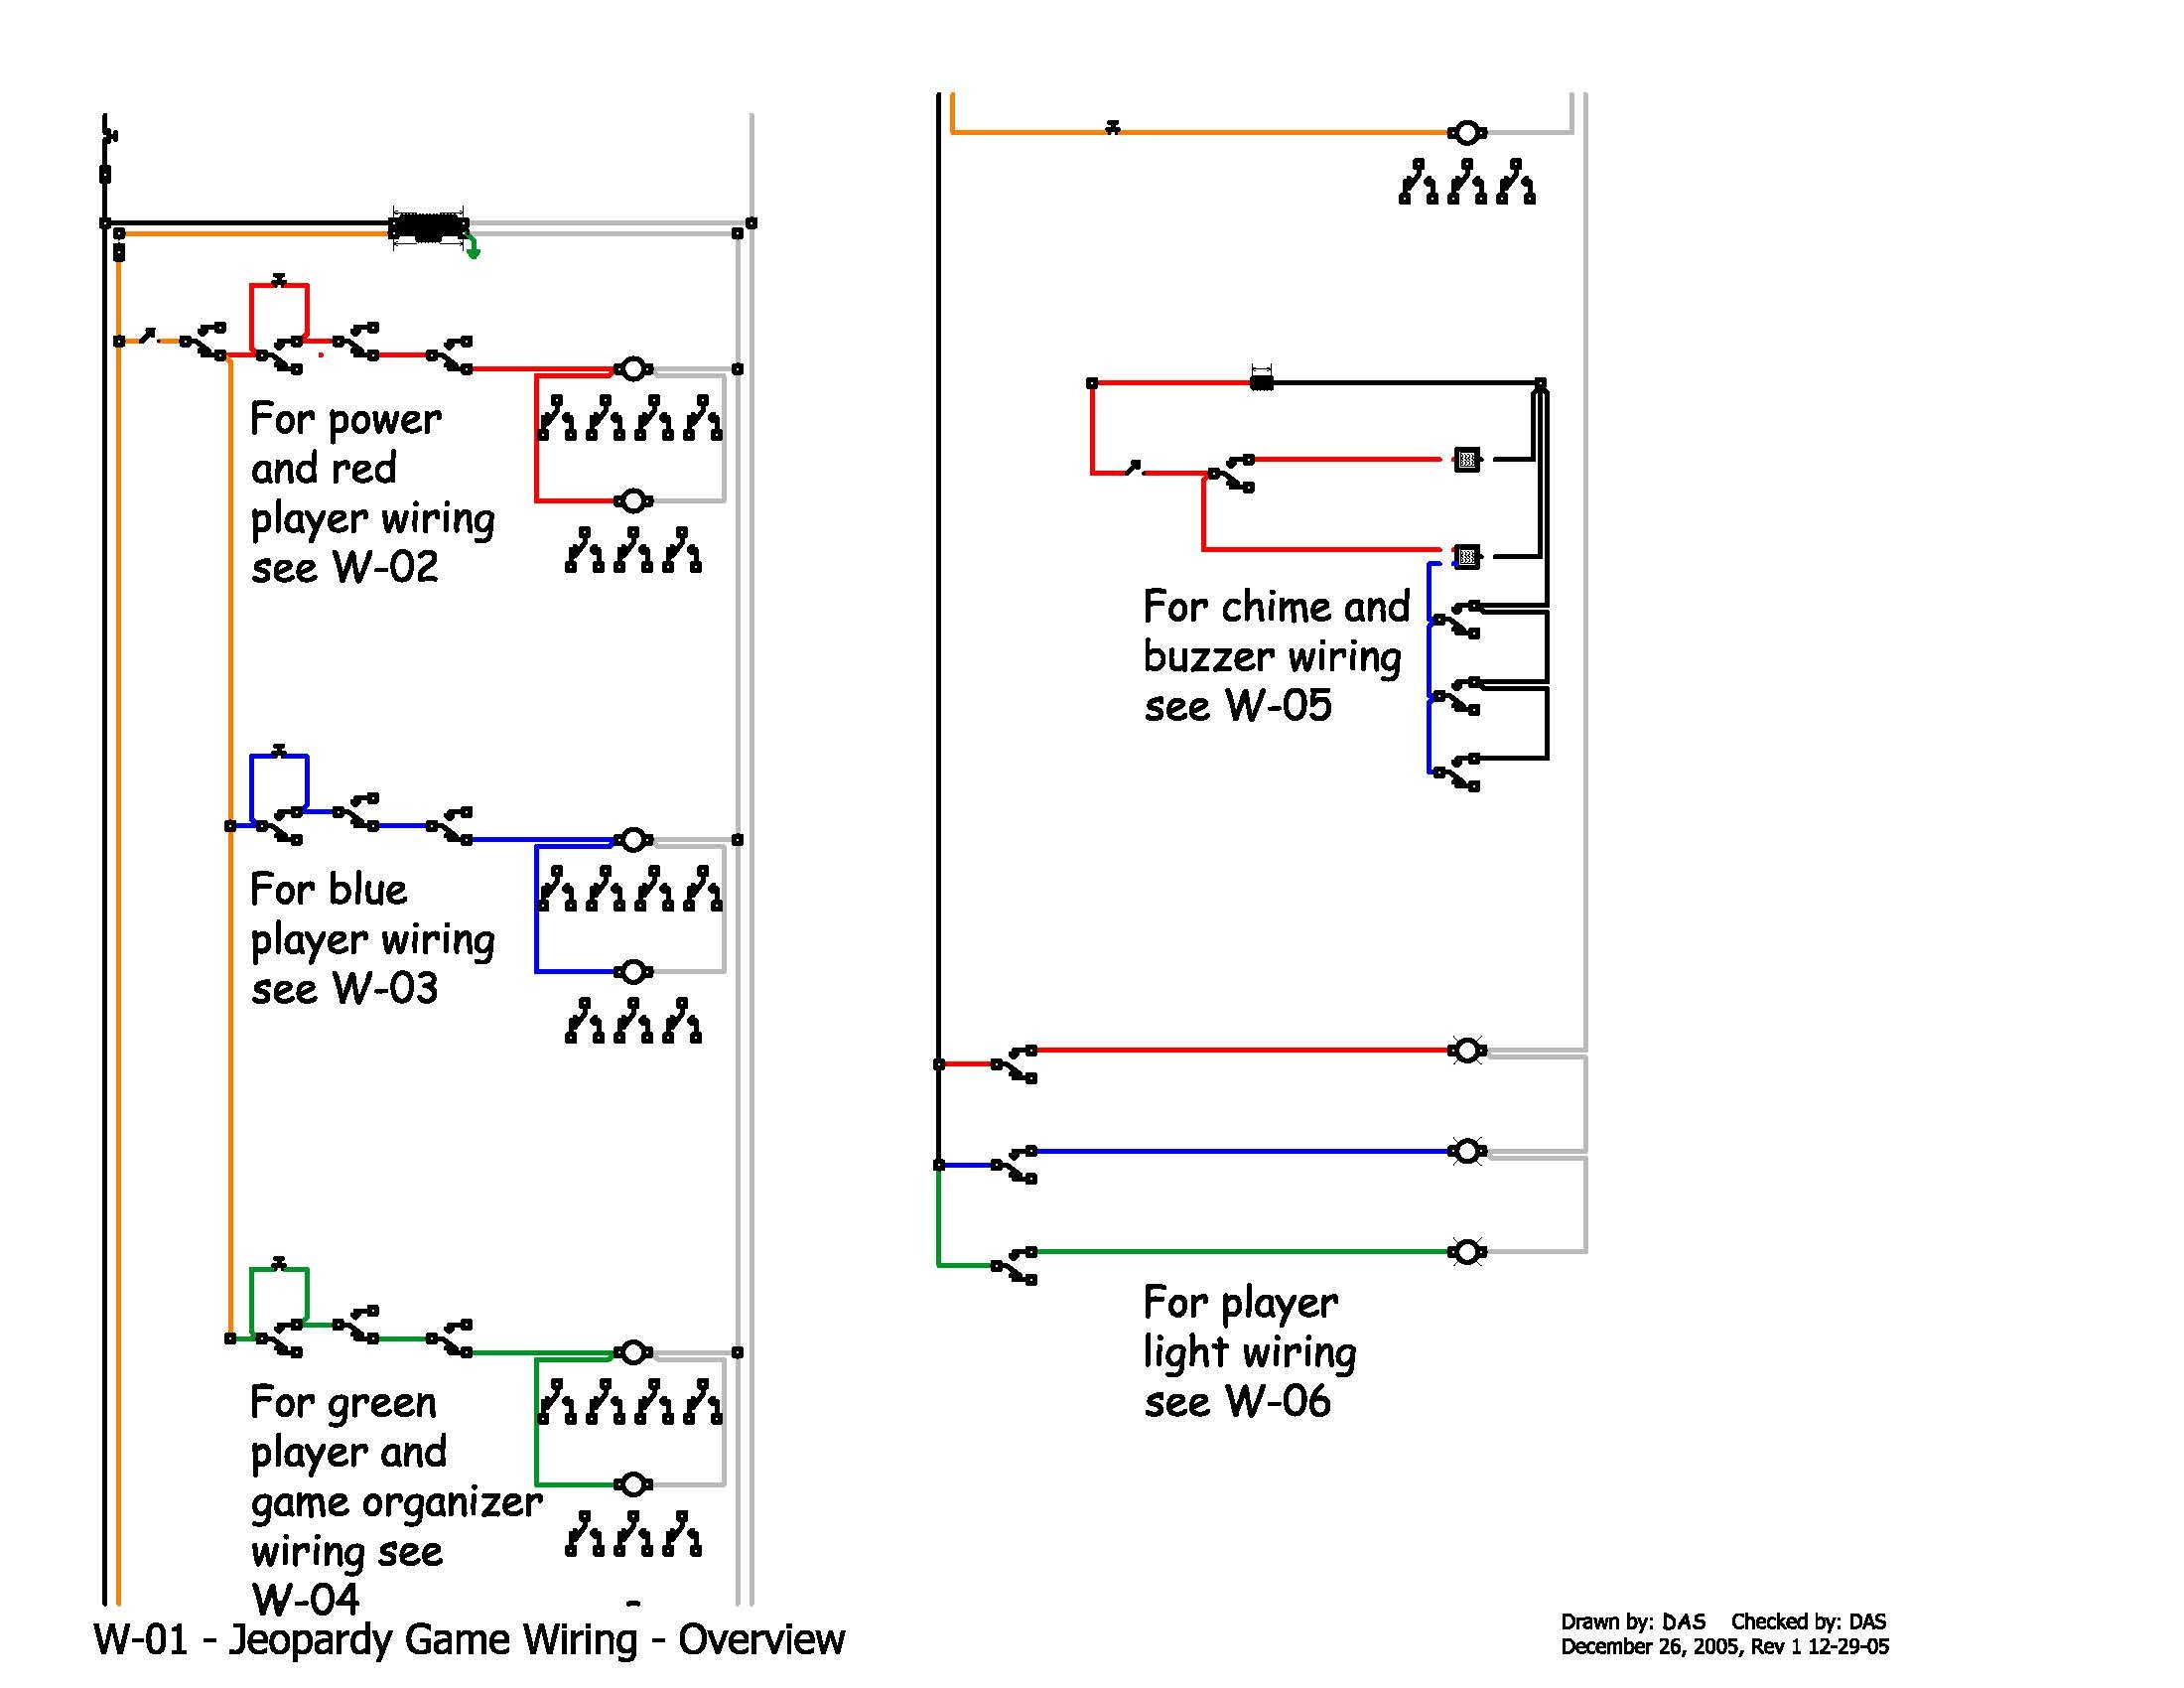 120 Volt Relay Wiring Diagram Beautiful How to Read Relay Schematic Gallery Everything You Need Of 120 Volt Relay Wiring Diagram